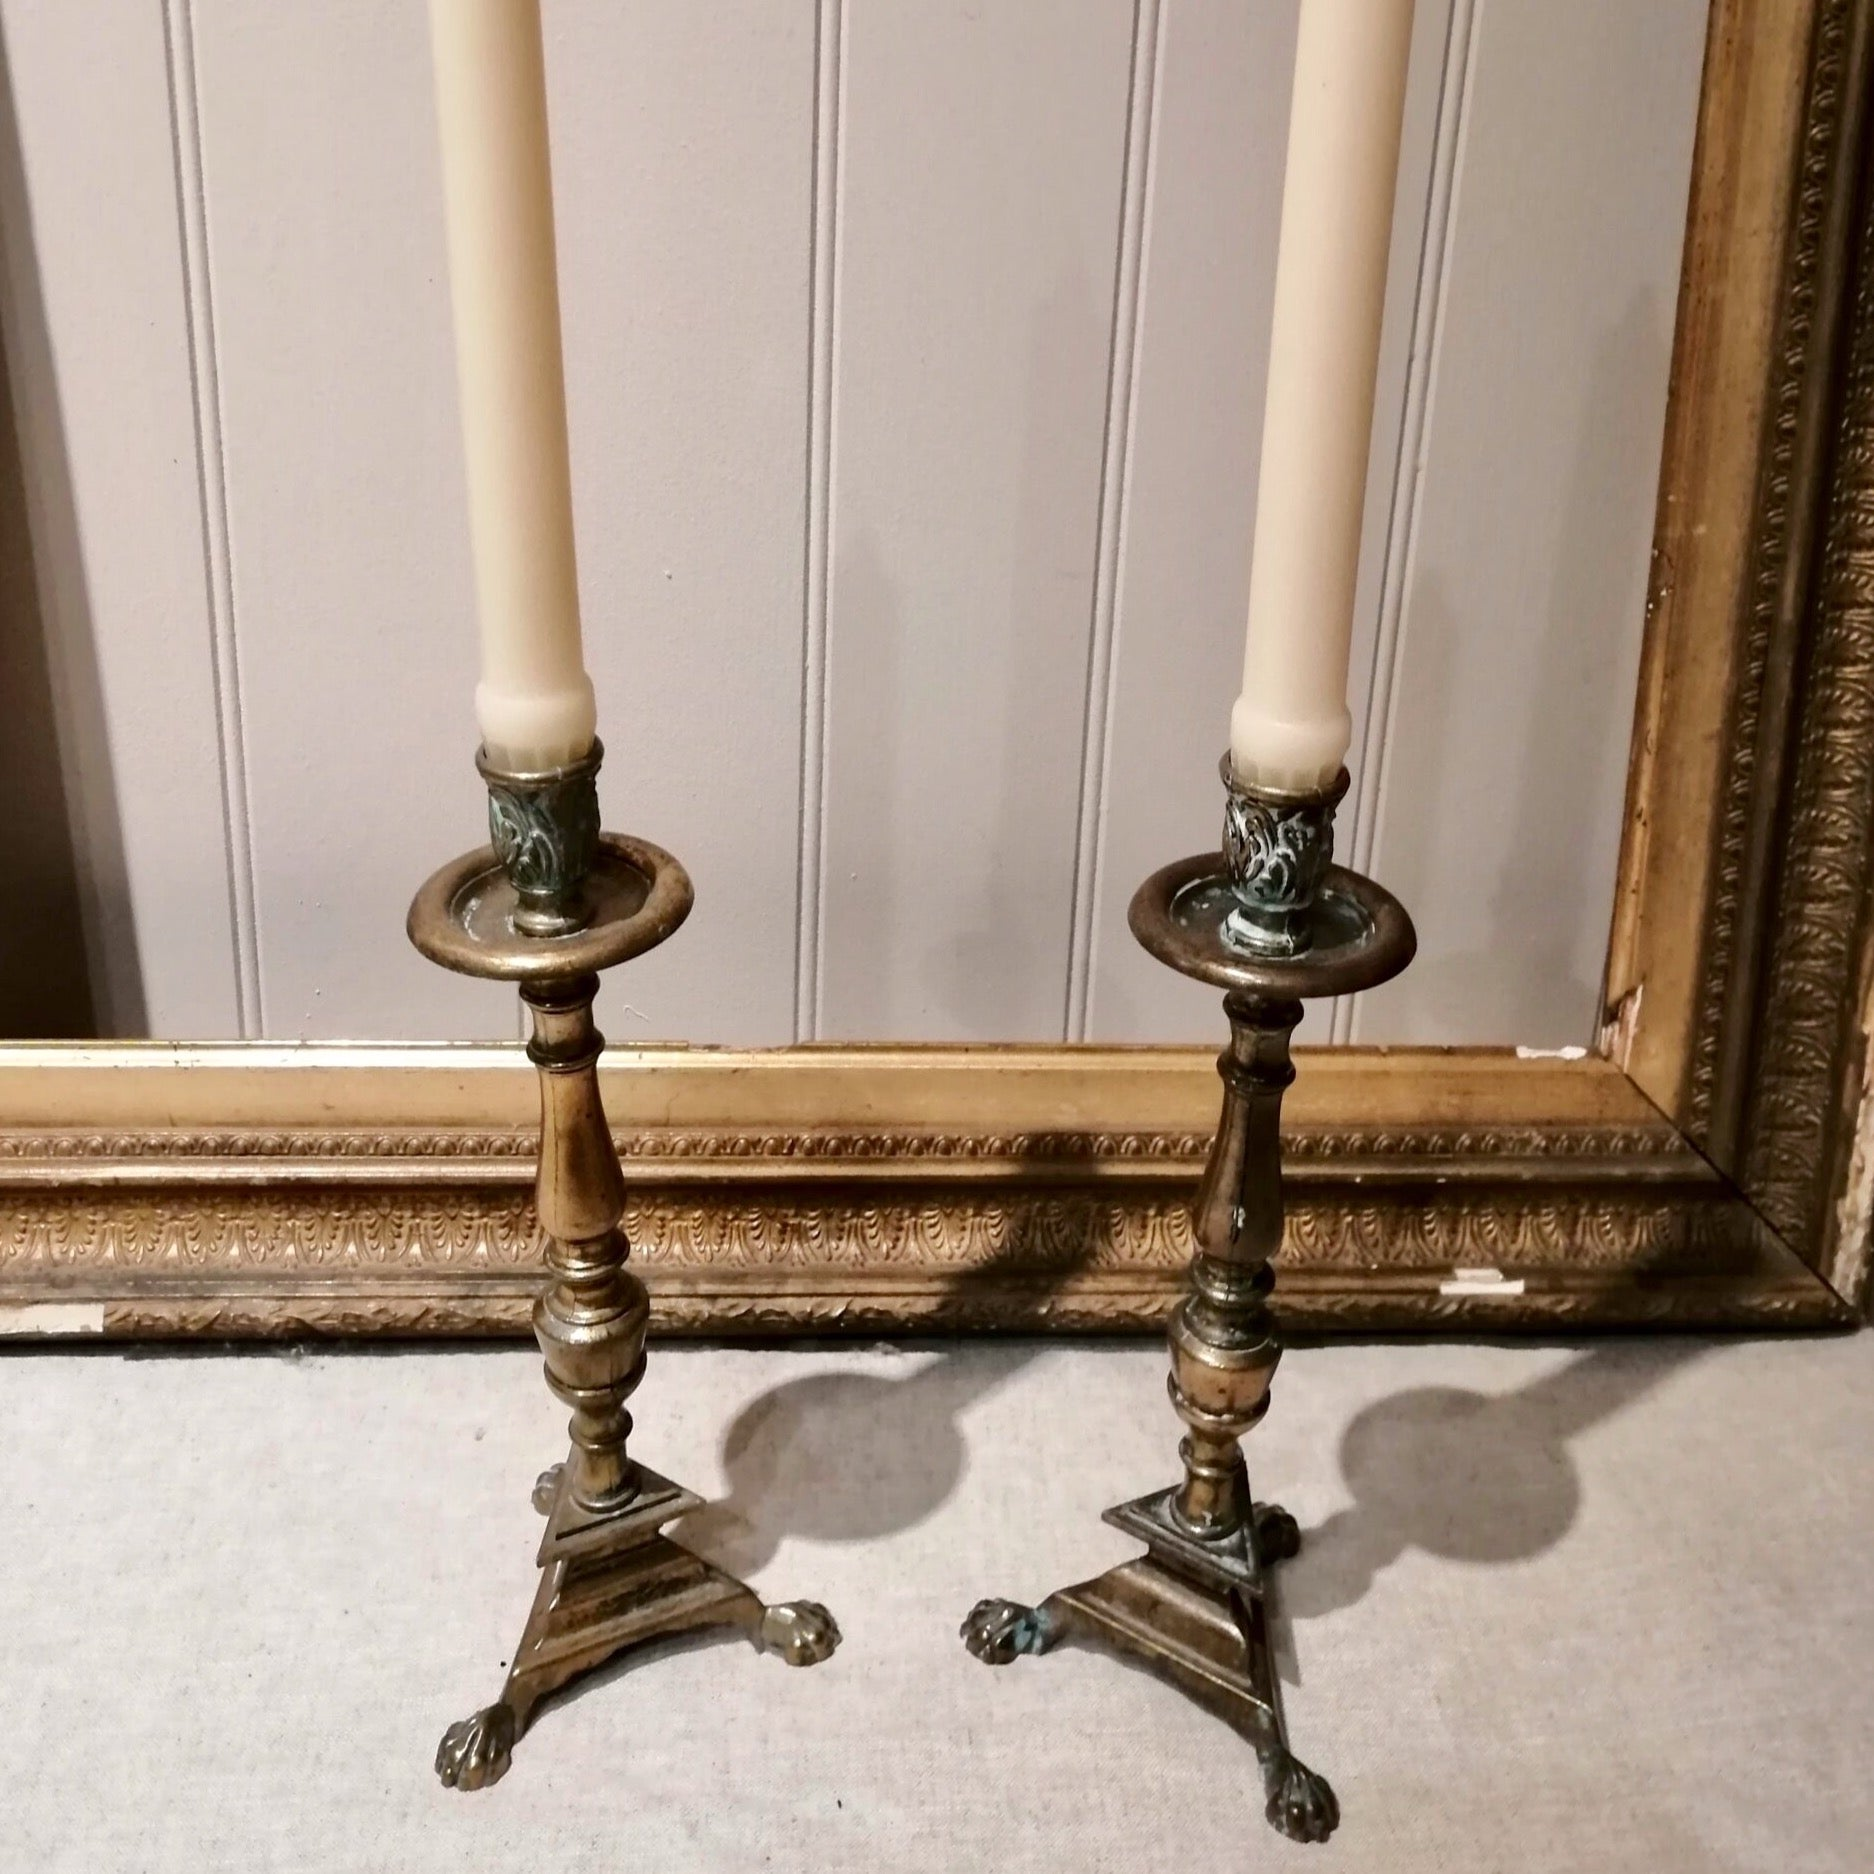 Pair of 20th Century Brass Candle Holders